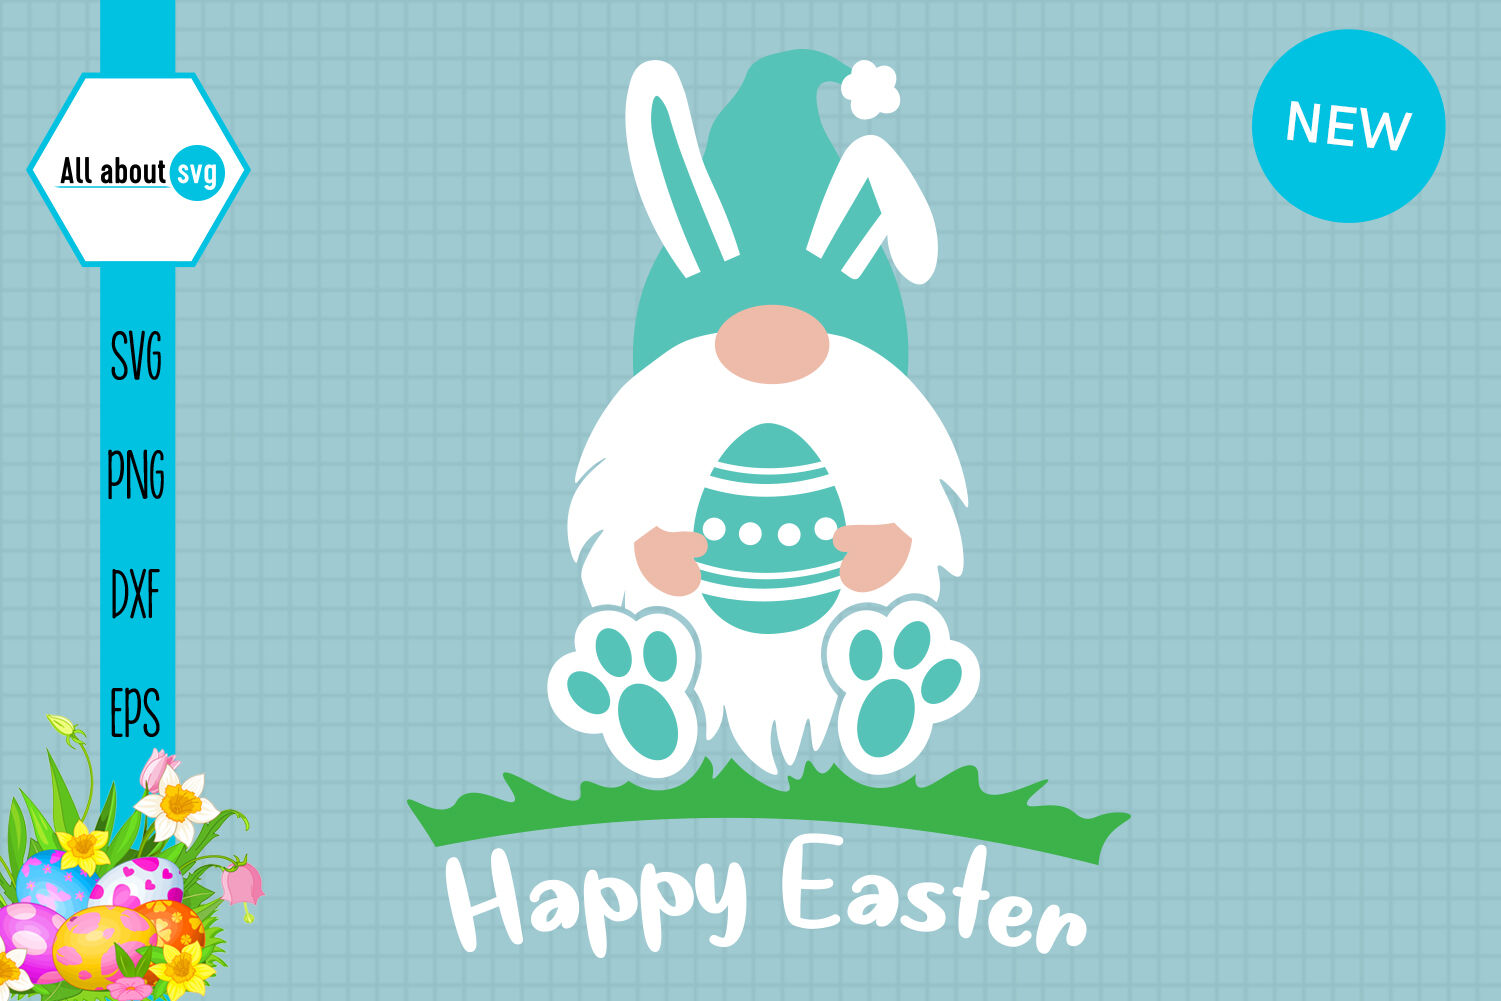 Easter Bunny Gnome Svg By All About Svg Thehungryjpeg Com